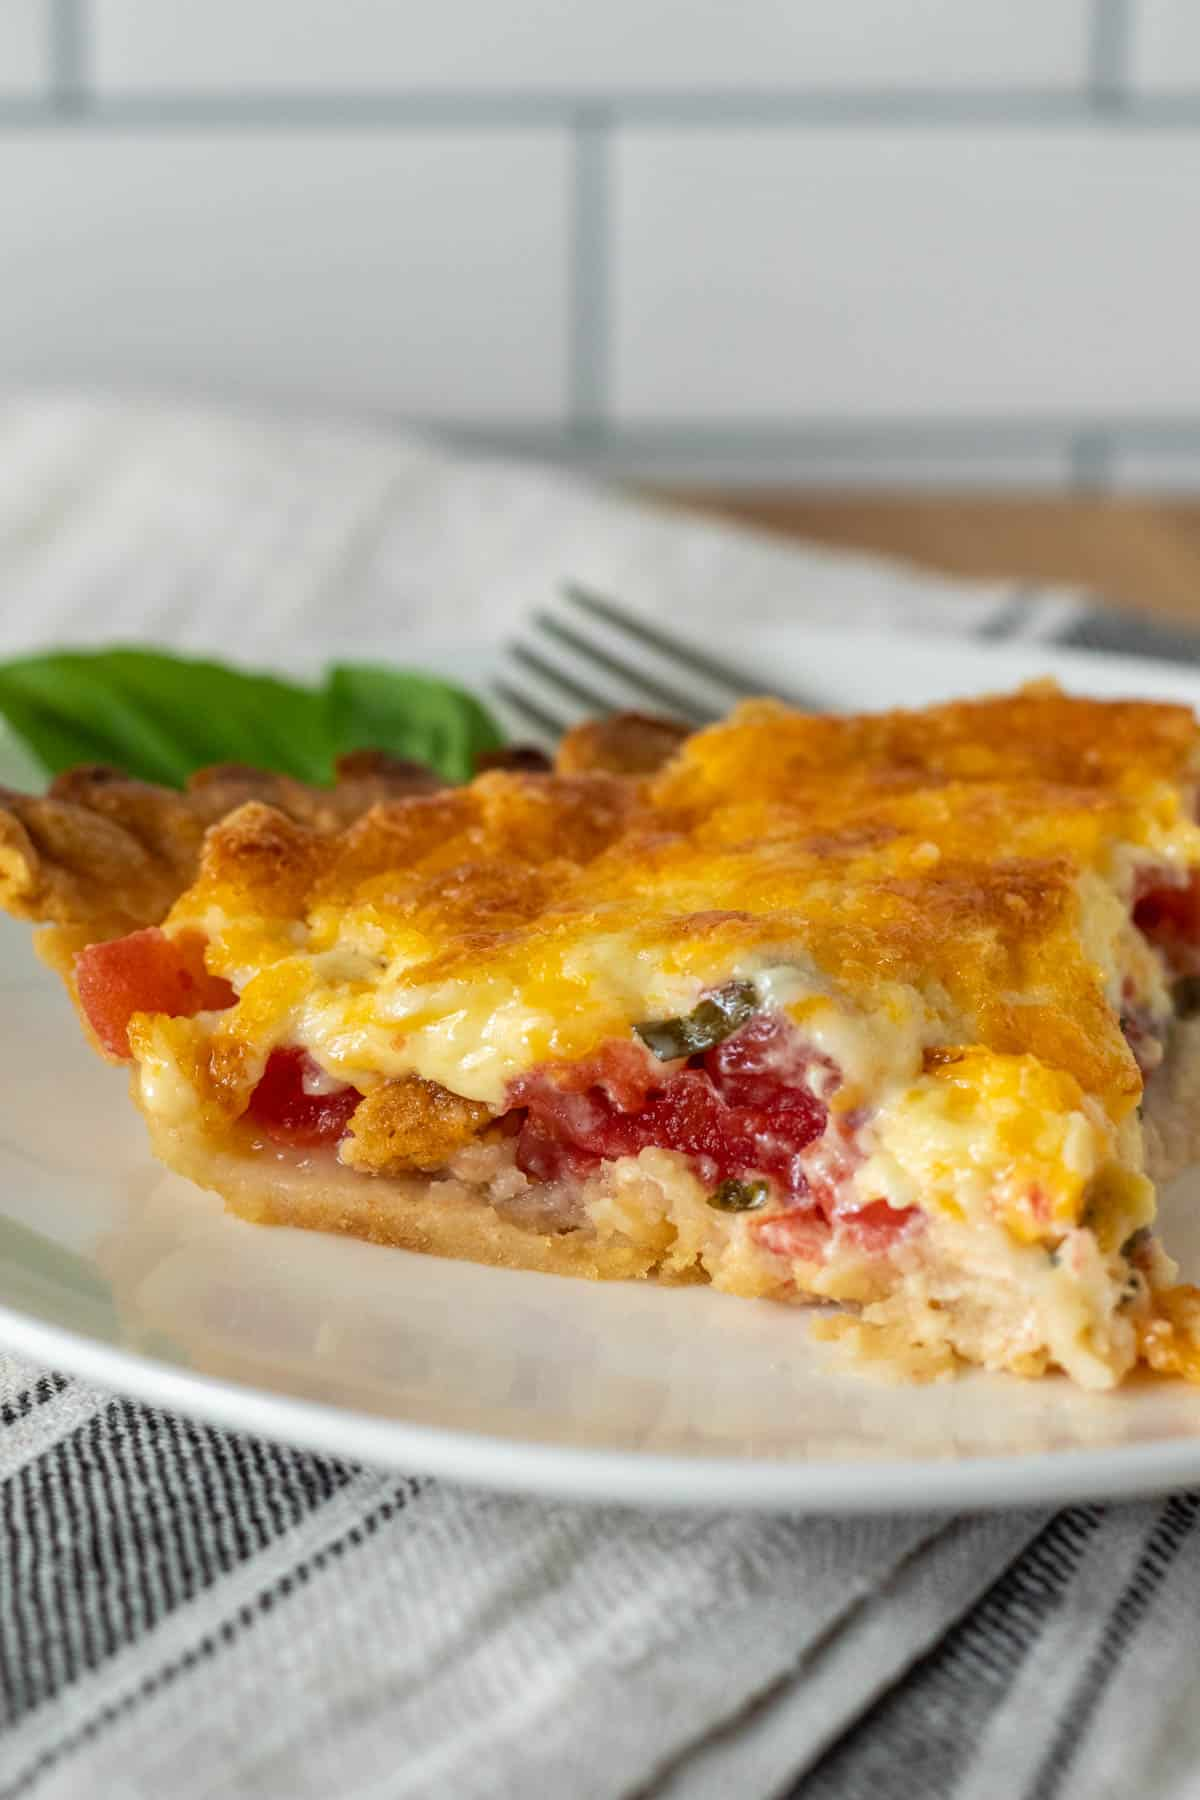 Piece of tomato pie on plate with fork.